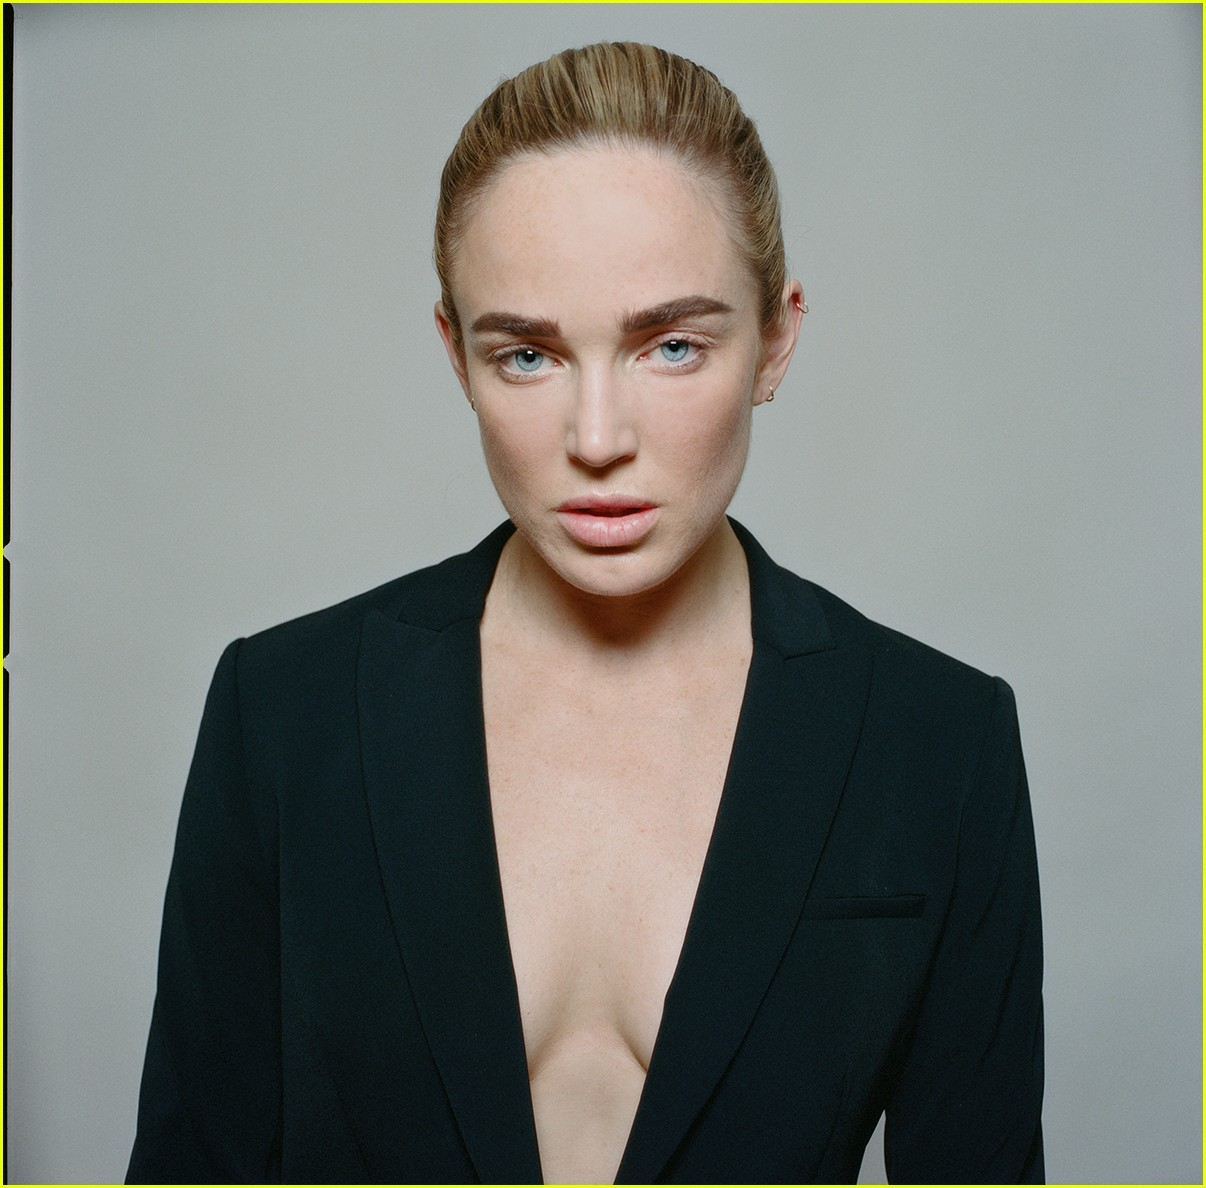 Caity Lotz nudes (94 photo), Topless, Hot, Feet, lingerie 2006